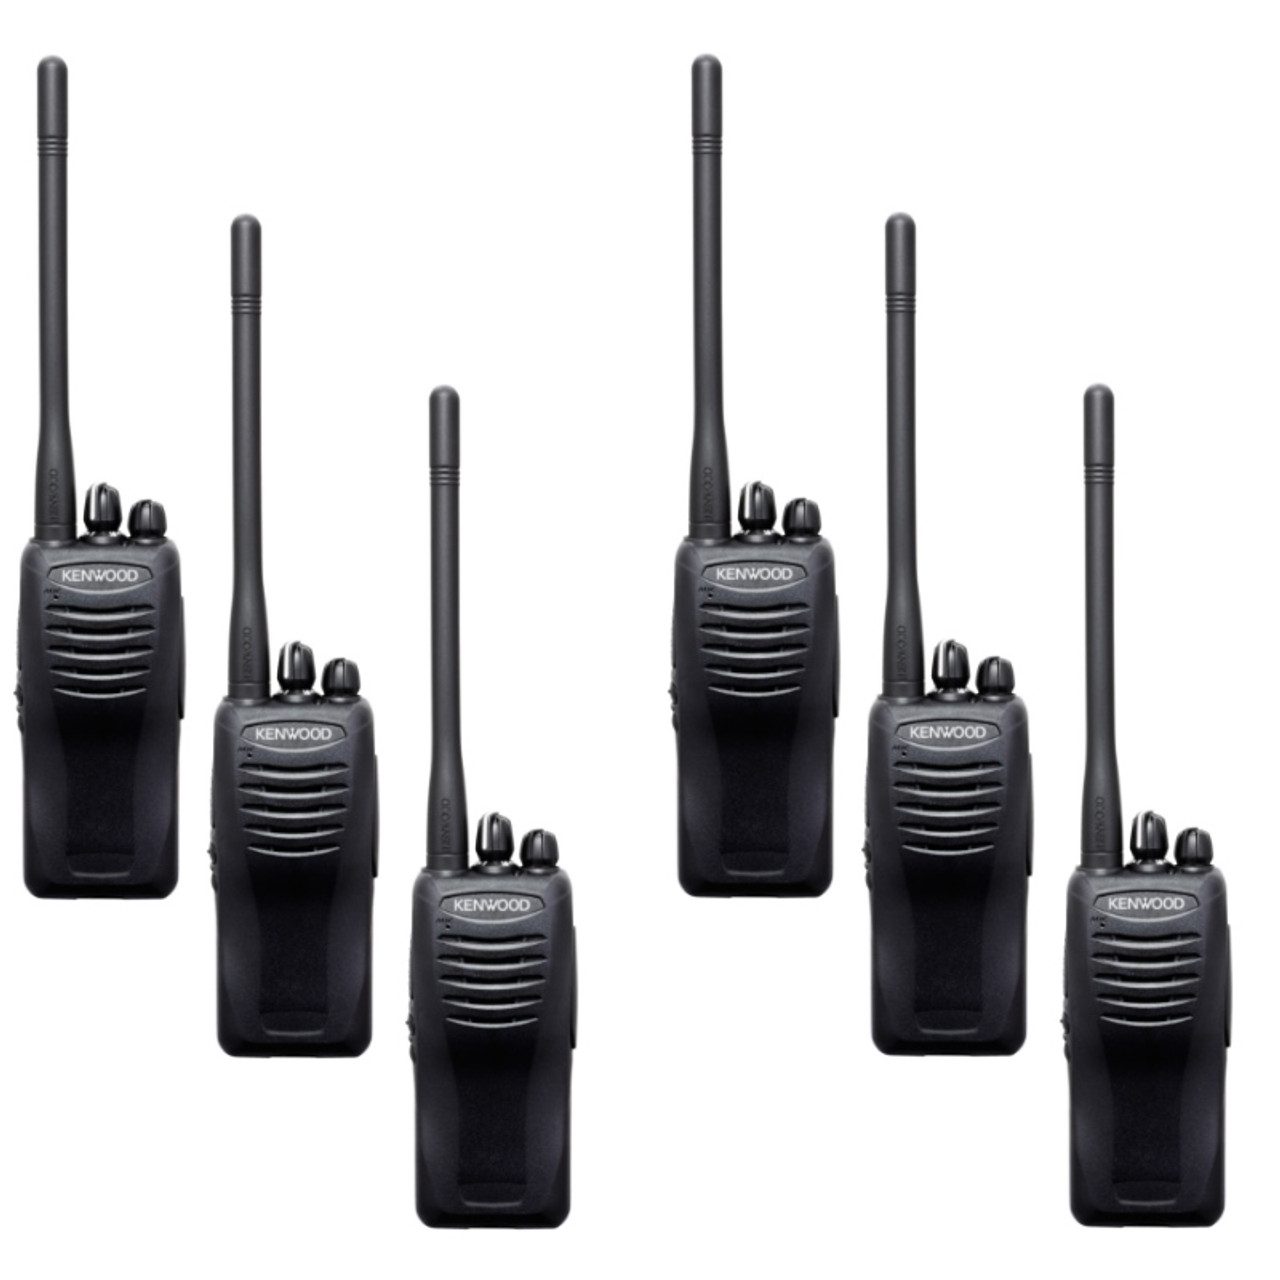 Six Pack of Kenwood TK-3402 5 Watt portable radio offers ...